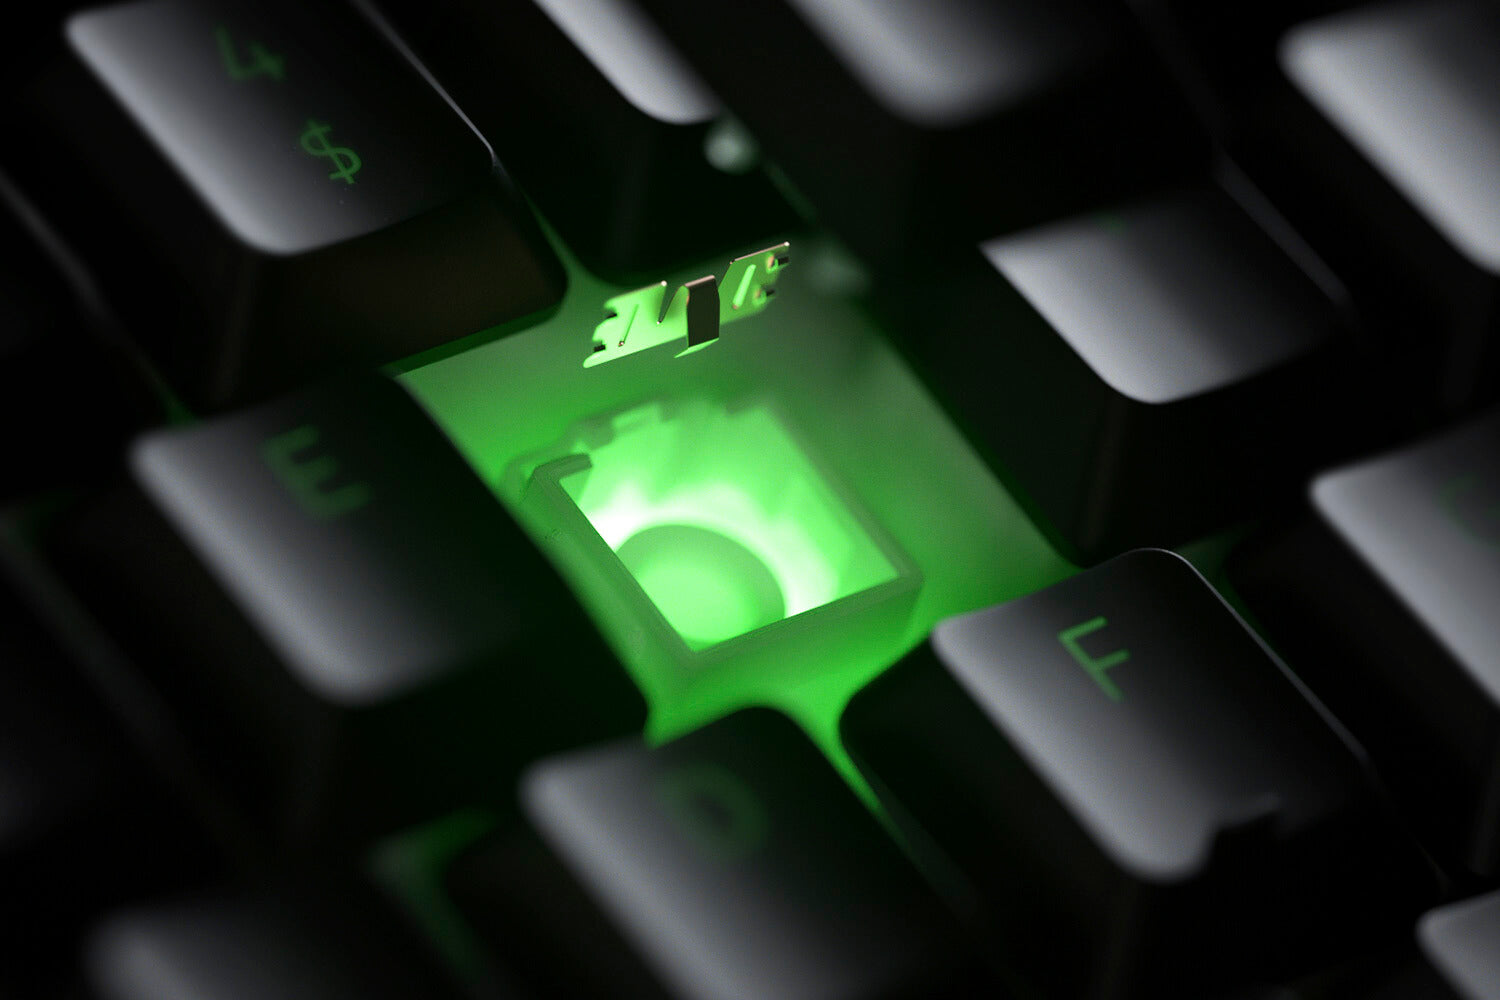 RAZER HYBRID MECHA-MEMBRANE SWITCH Fusing the snappy, clicky feedback of a mechanical switch with the familiar, cushioned feel of a conventional keyboard, each keystroke you make on the Razer Ornata V2 is as satisfying as it is precise.